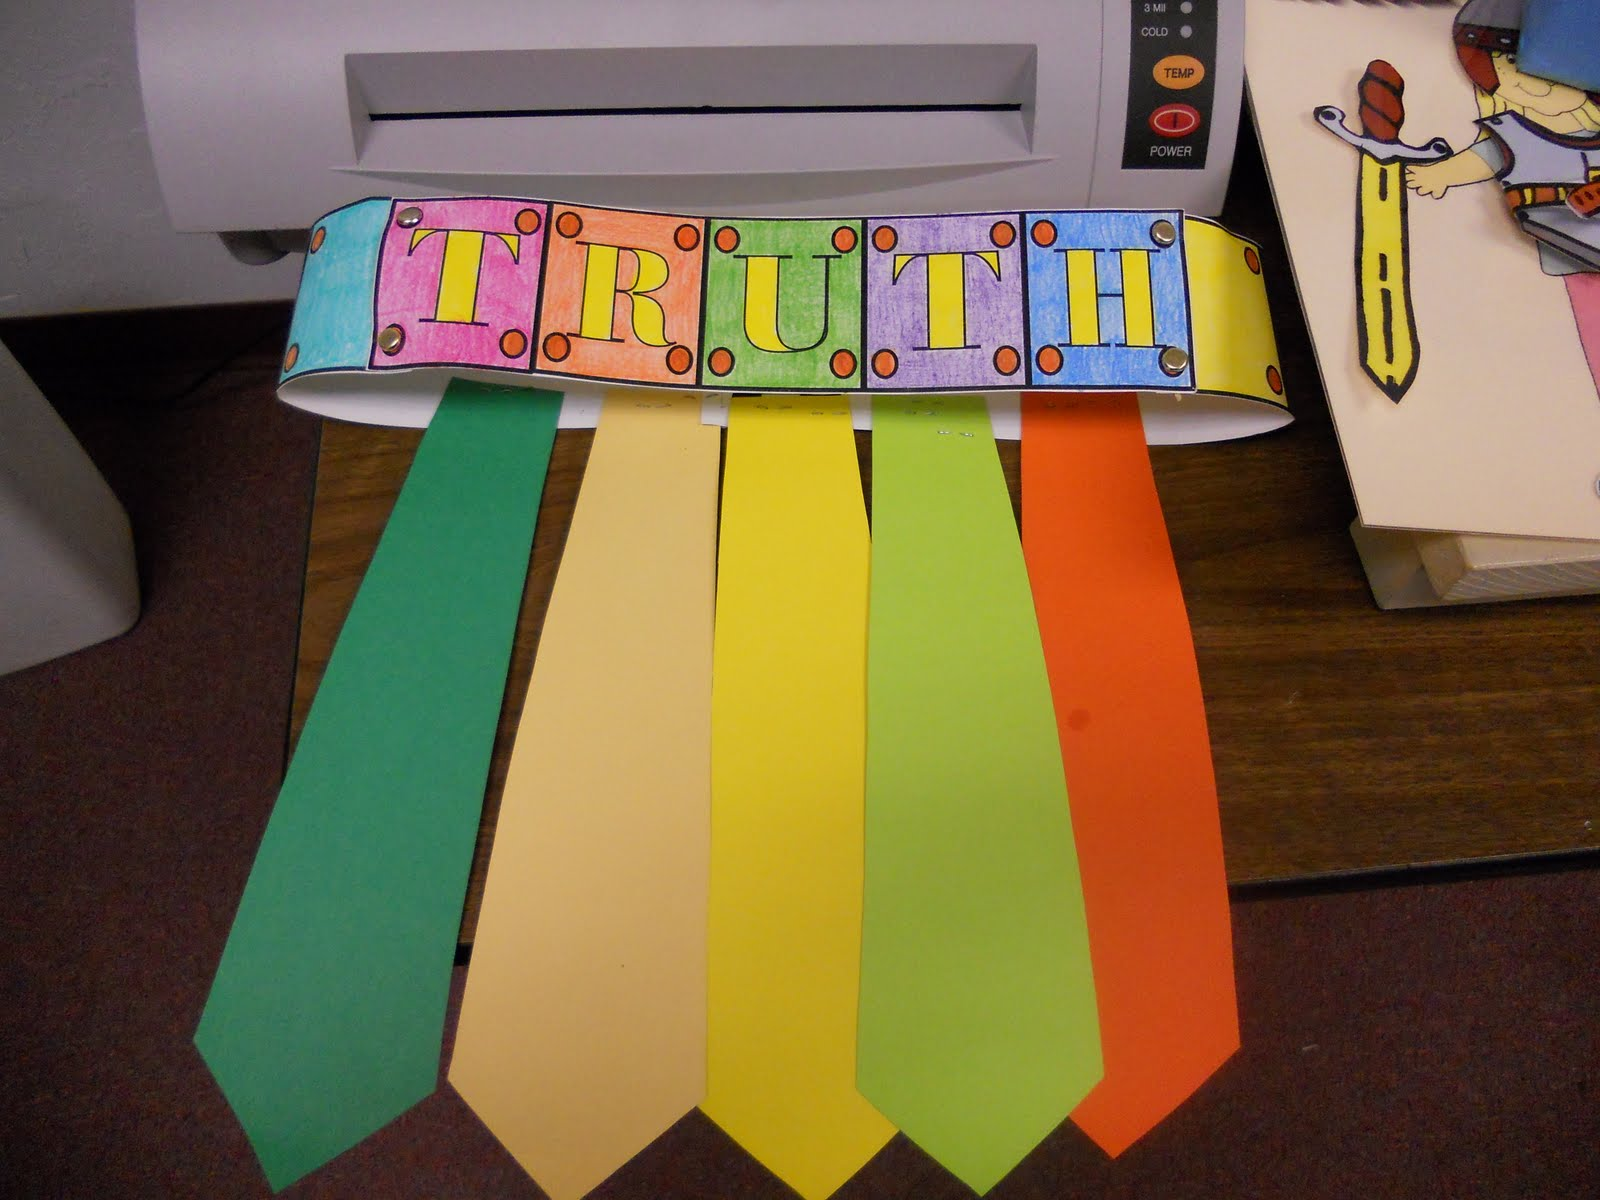 Belt Of Truth Craft For Kids